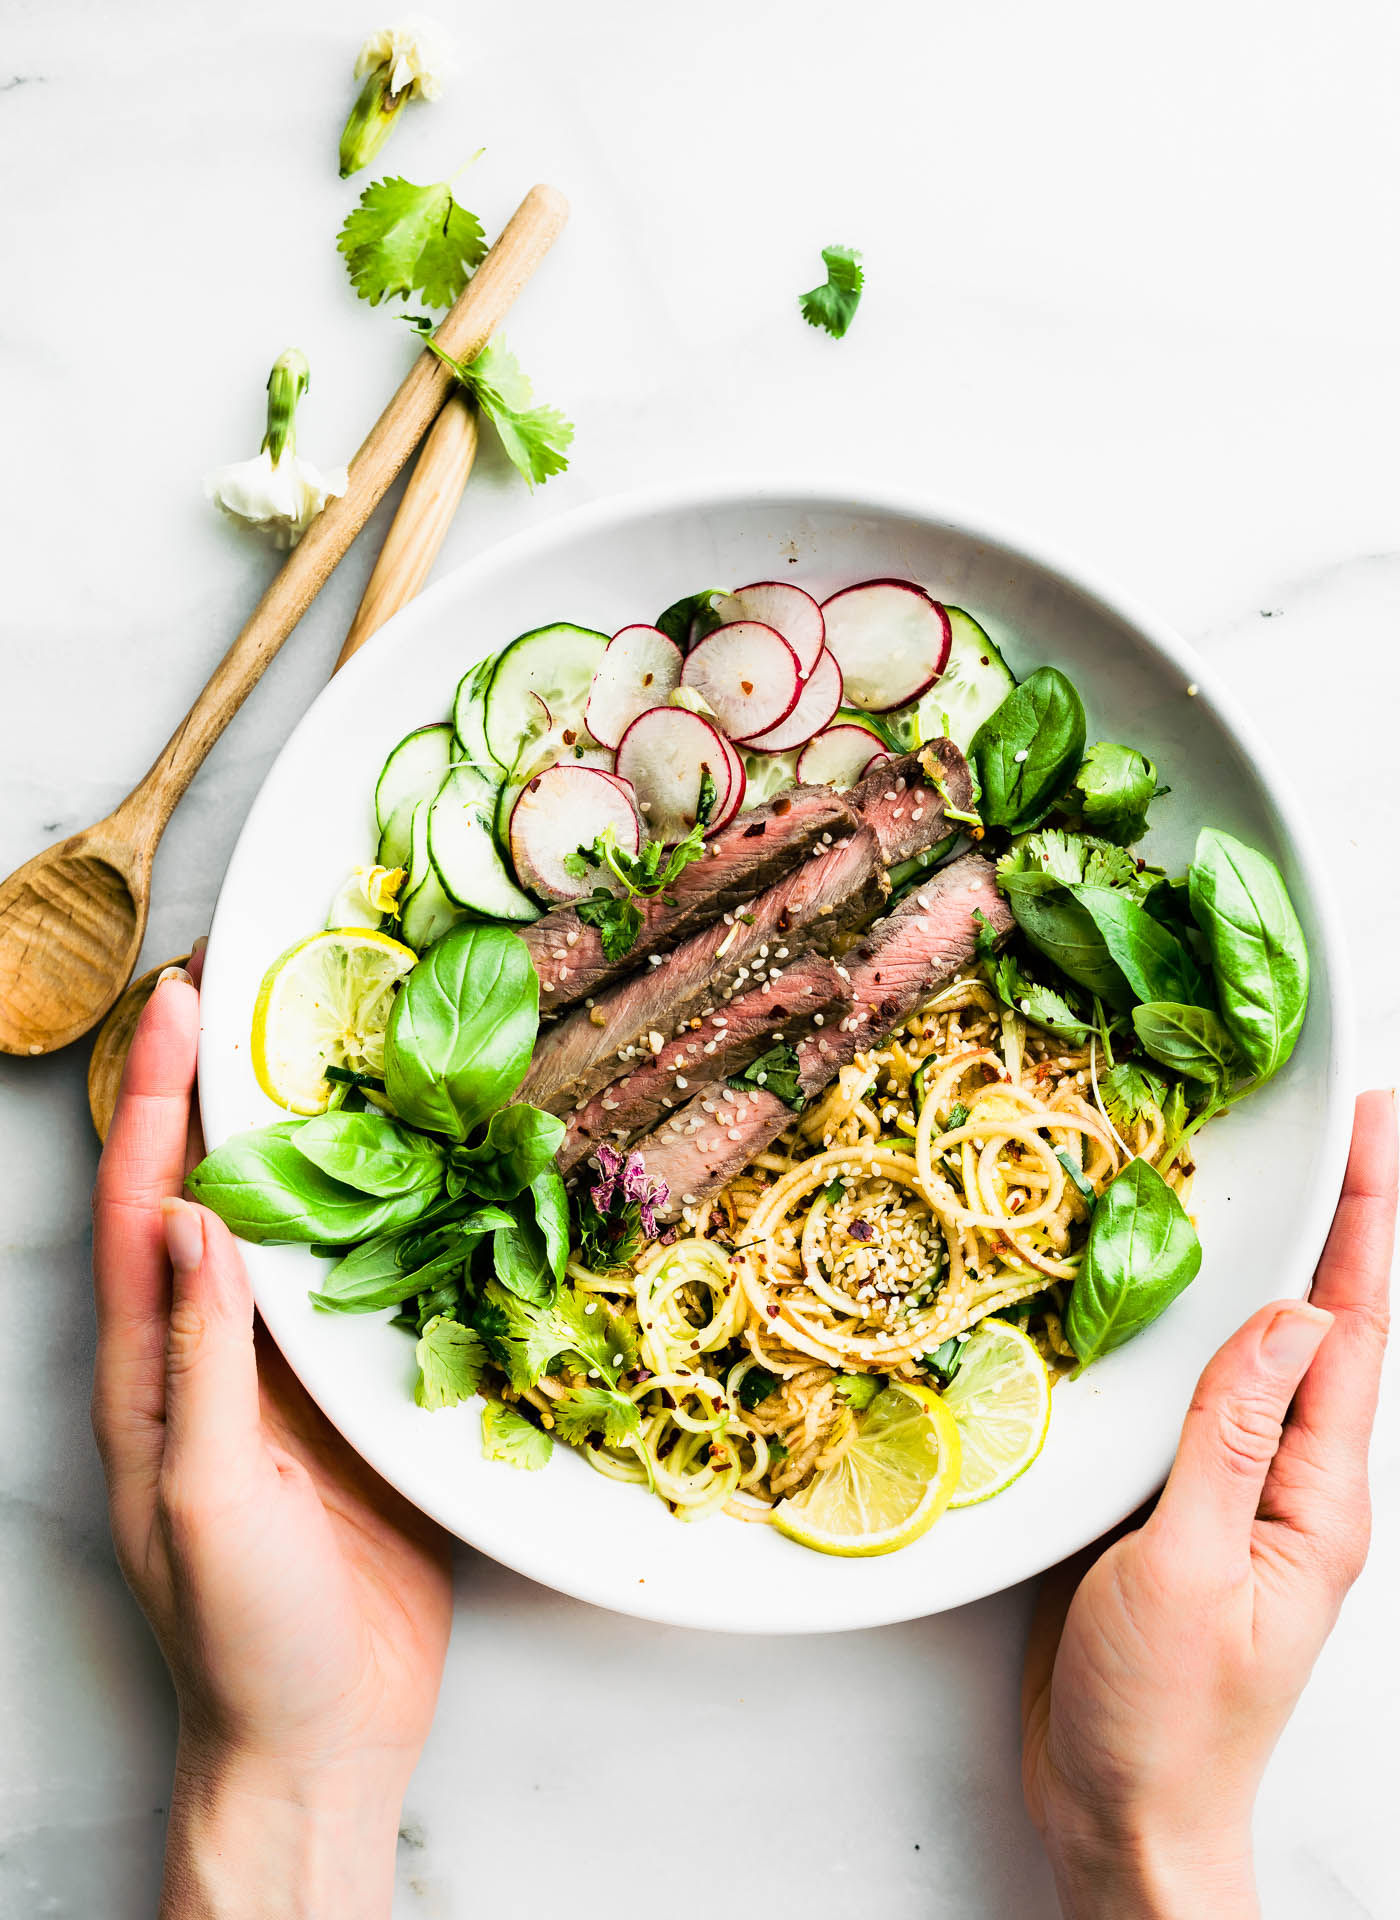 low carb salad with spiralized vegetables, sesame beef and kimchi salad dressing